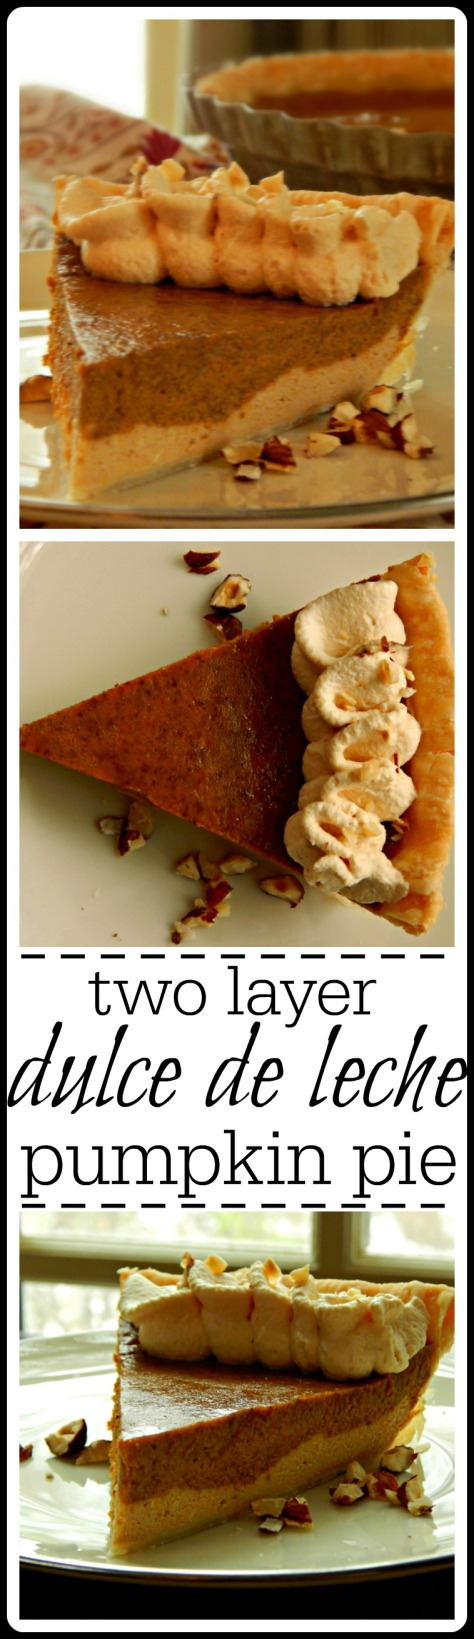 It's like cheesecake on the bottom, pumpkin pie on the top with dulce de leche whipped cream topping.